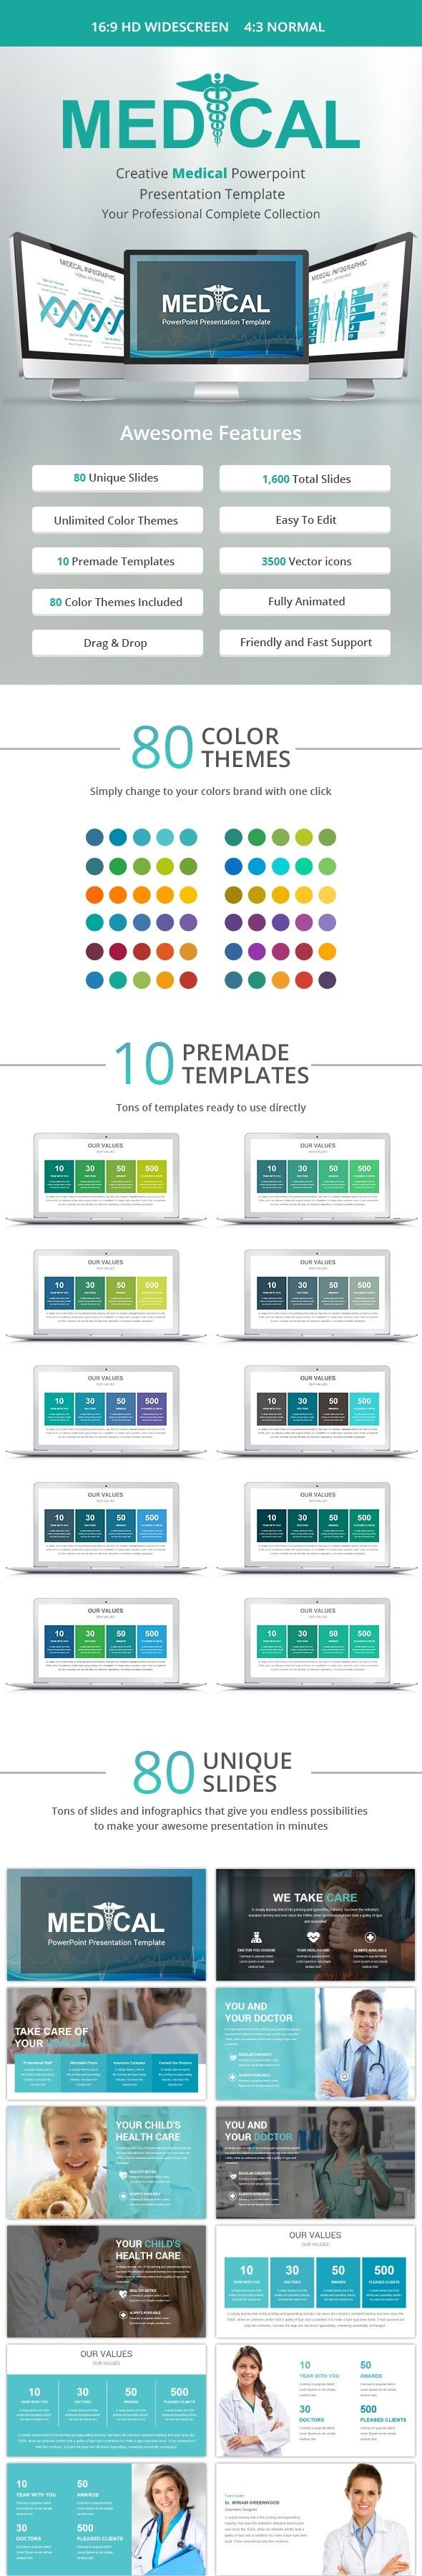 Medical powerpoint presentation template powerpoint presentation medical powerpoint presentation template powerpoint presentation templates presentation templates and medical toneelgroepblik Image collections